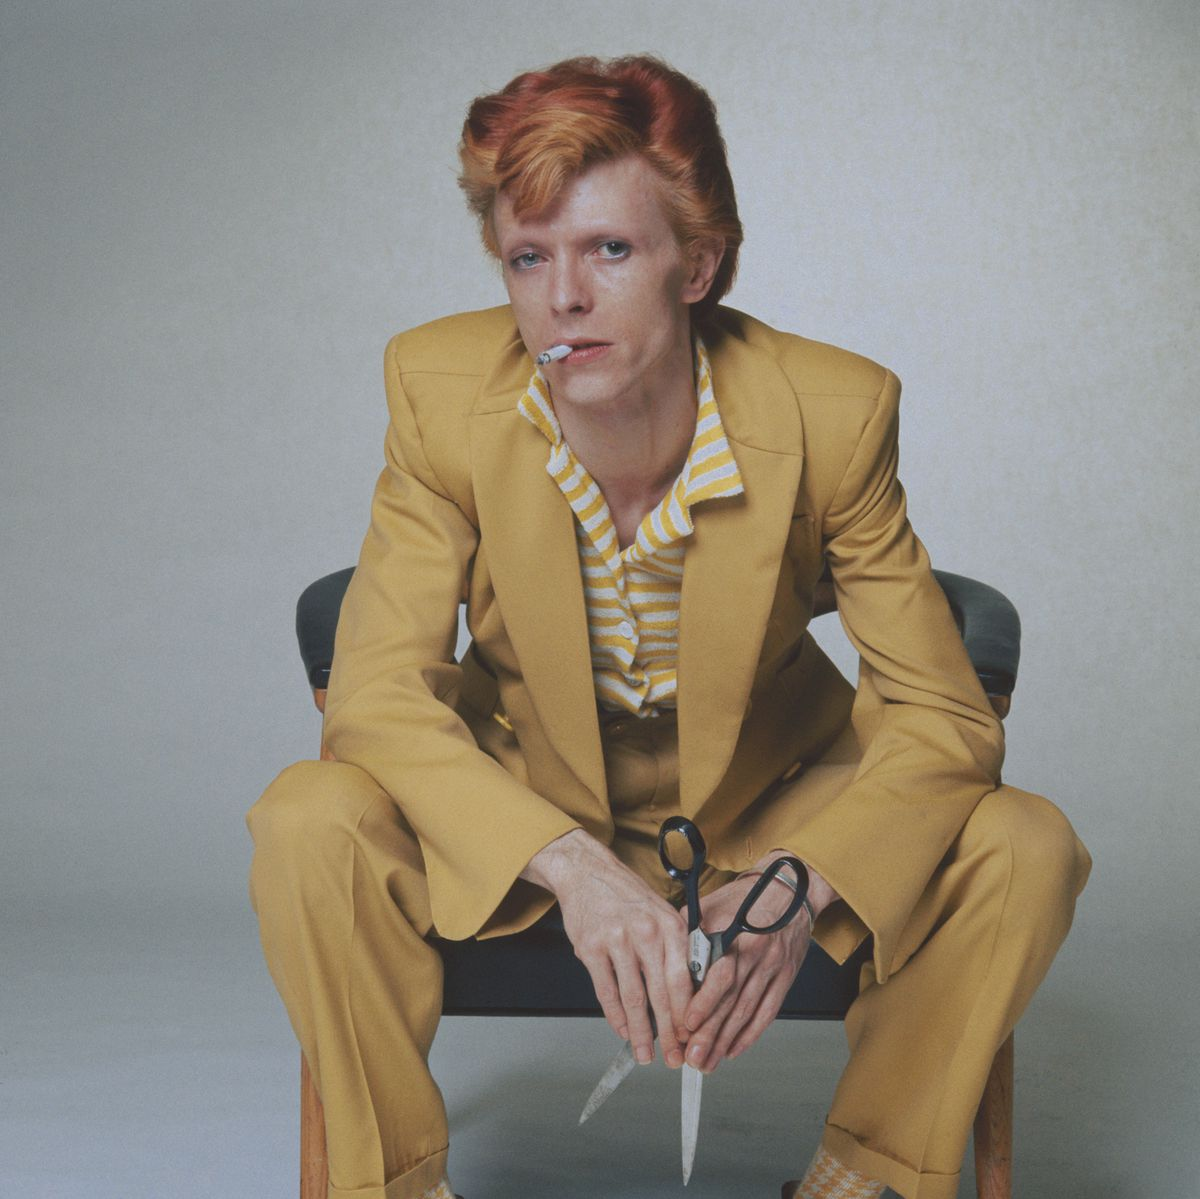 david bowie yellow suit